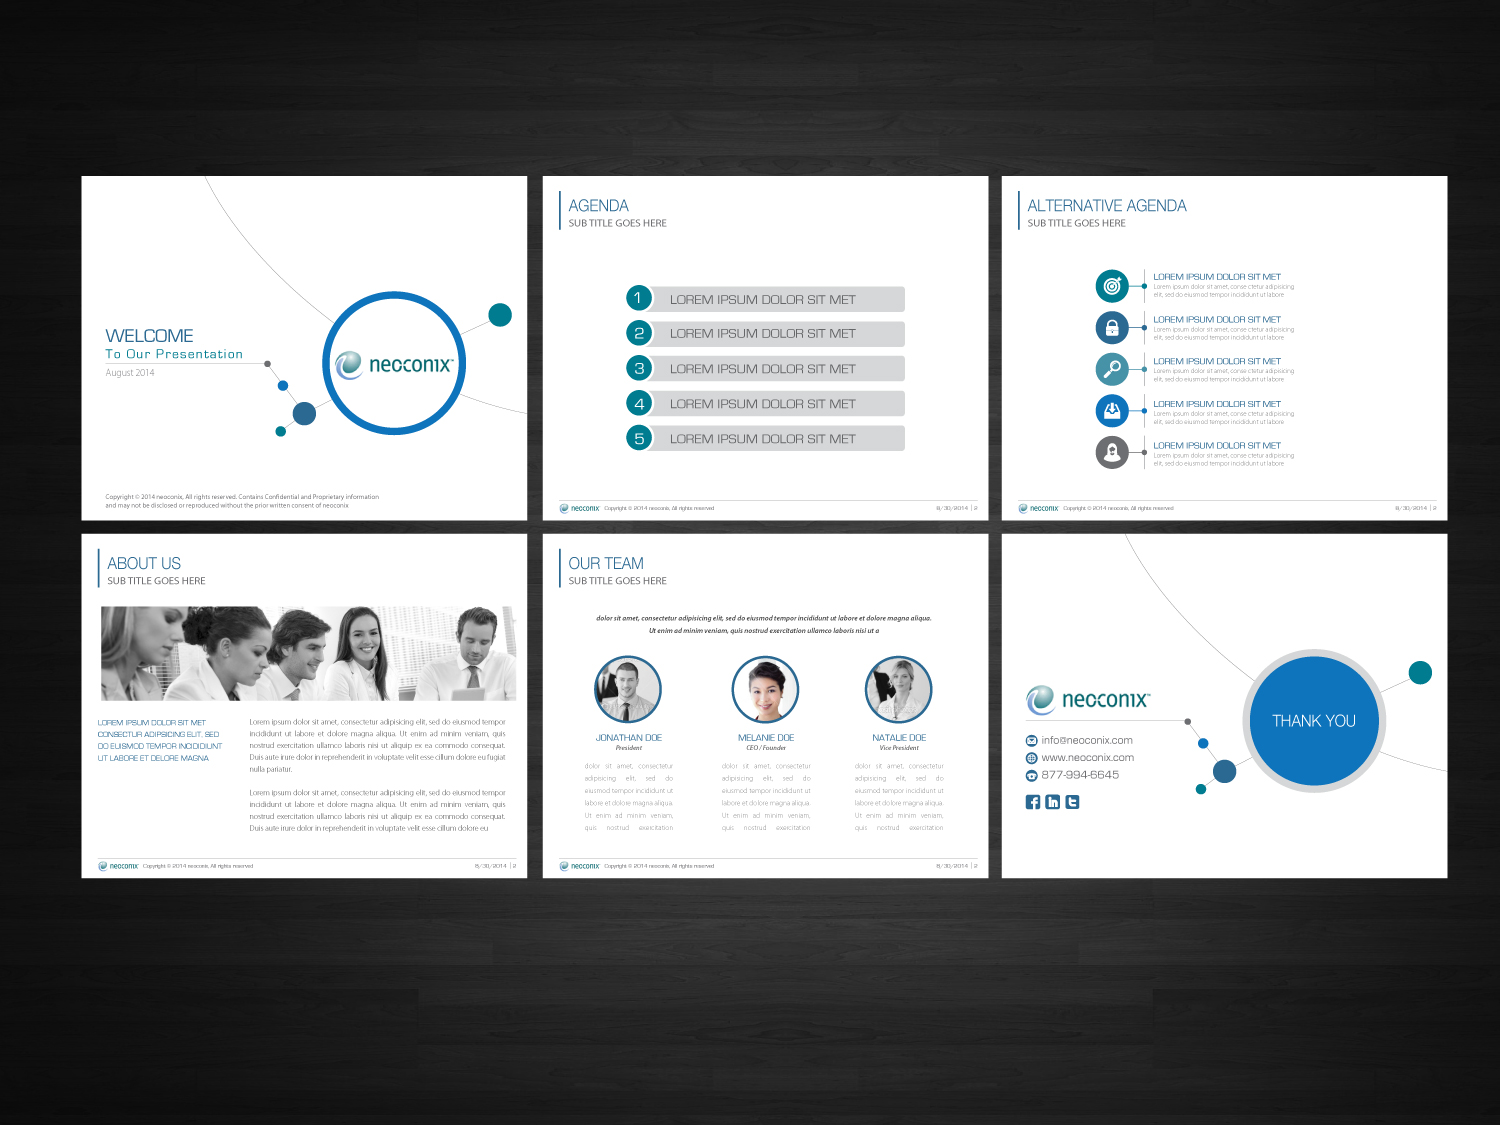 powerpoint design for jay aggarwal by nila design 4408385